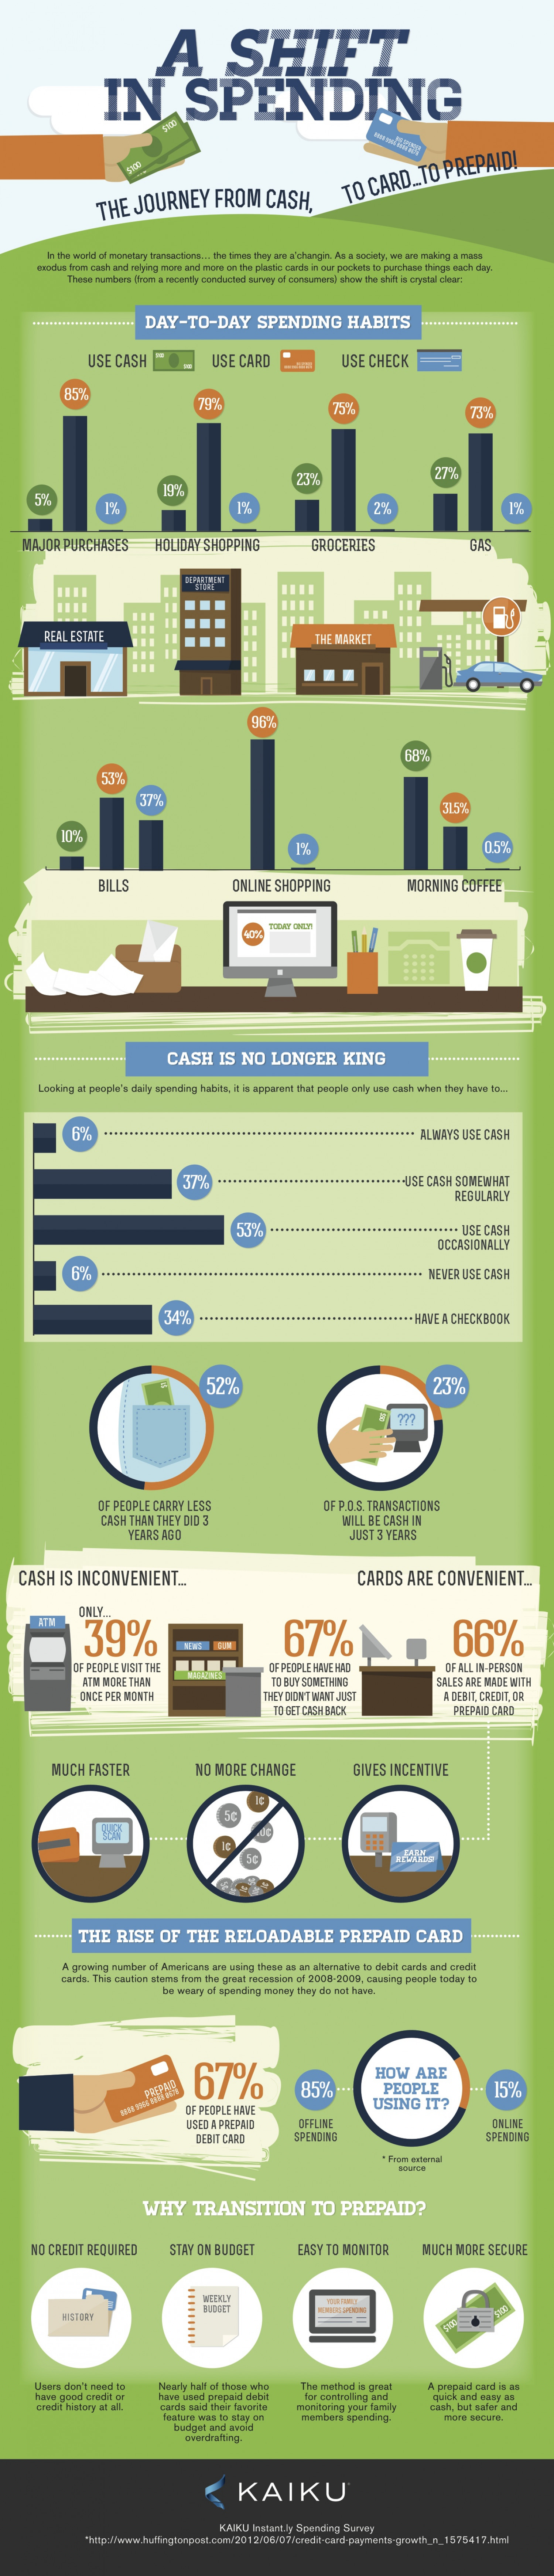 Cash is No Longer King, A Survey of the Shift In Spending Habits  Infographic